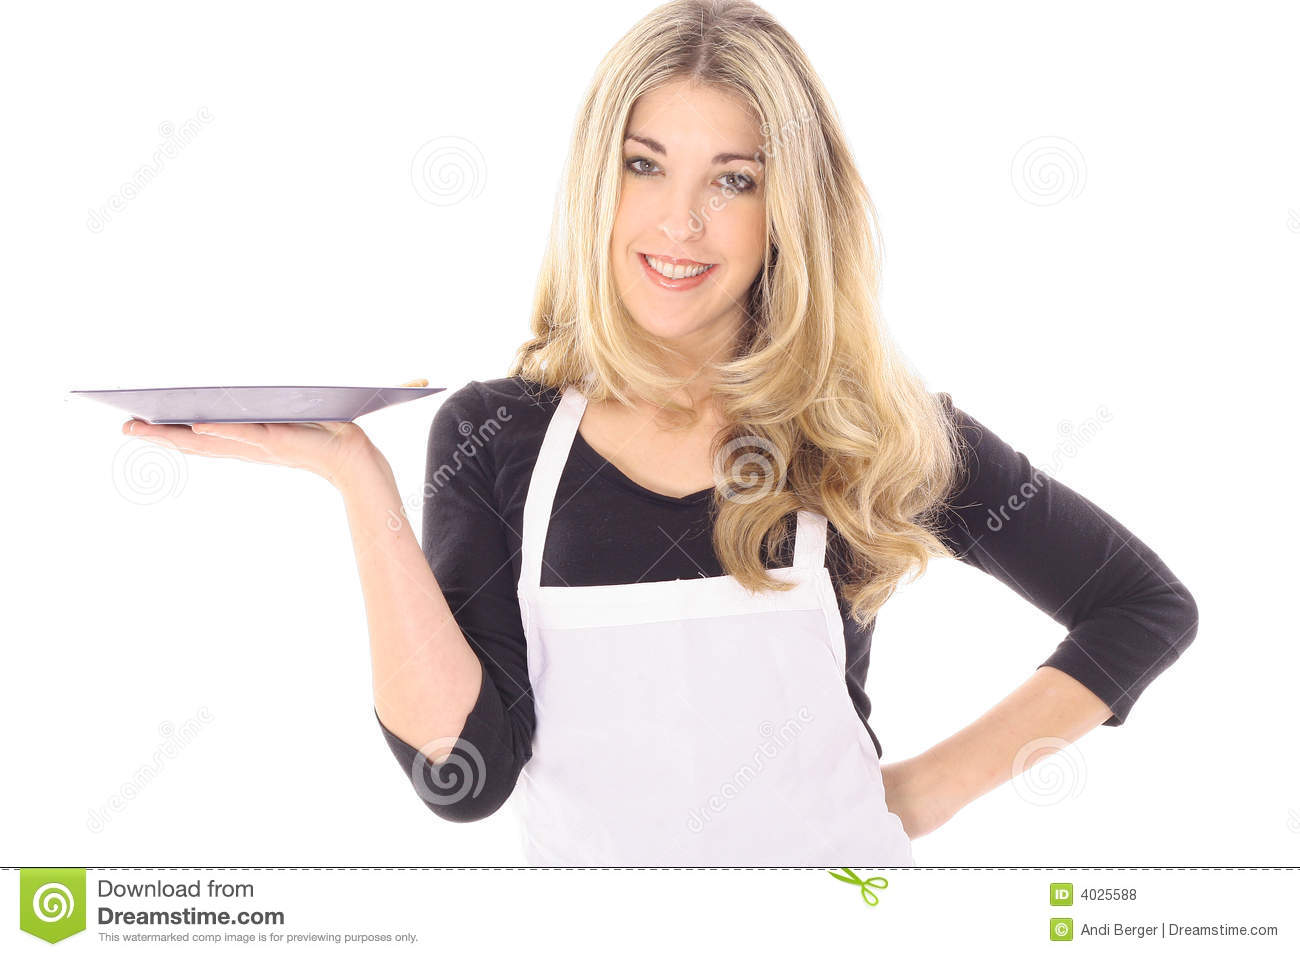 White apron ladies - Beautiful Woman In Apron Holding Your Product Royalty Free Stock Photos